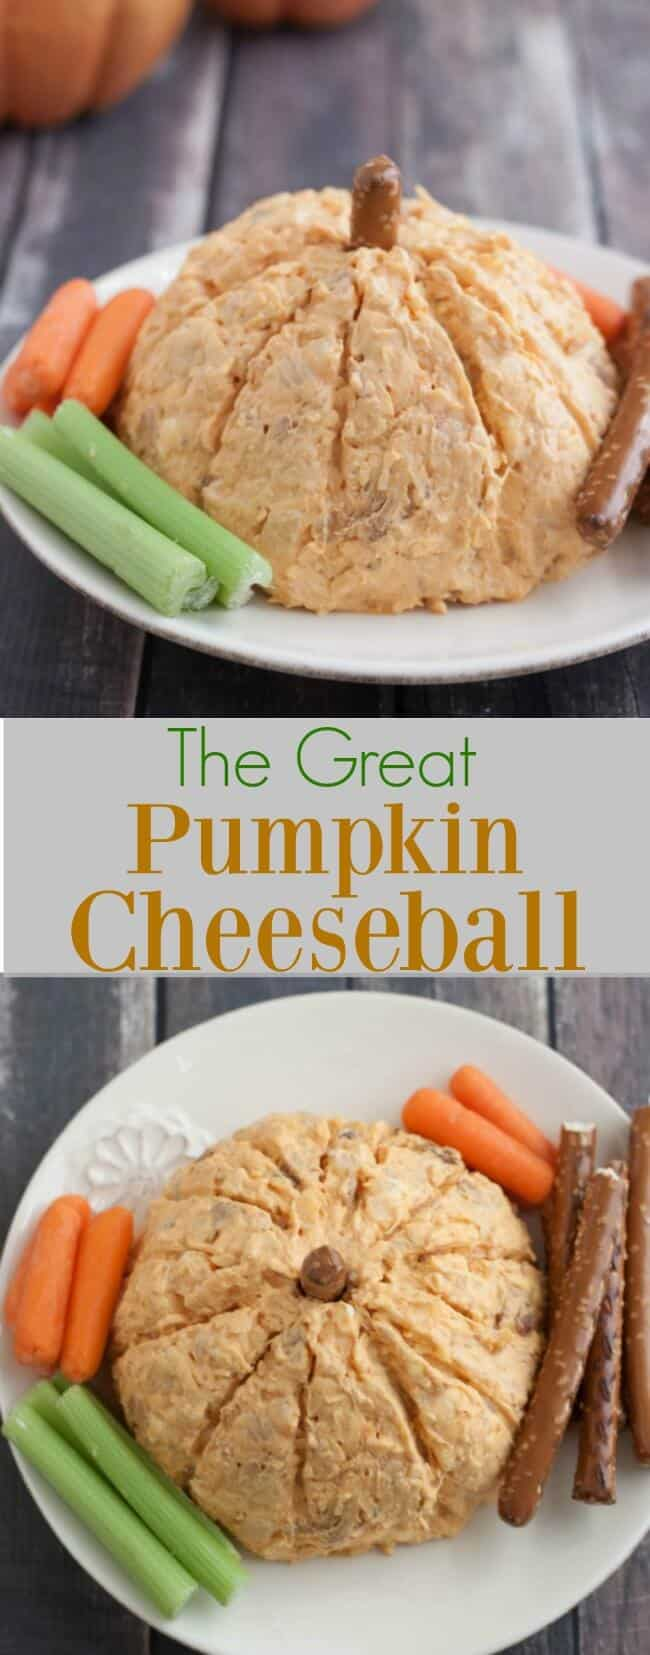 The Great Pumpkin Cheese Ball has real pumpkin! With only a few ingredients, it's easy to whip up this seasonal appetizer. Make ahead too! Find it at MealPlanningMagic. com